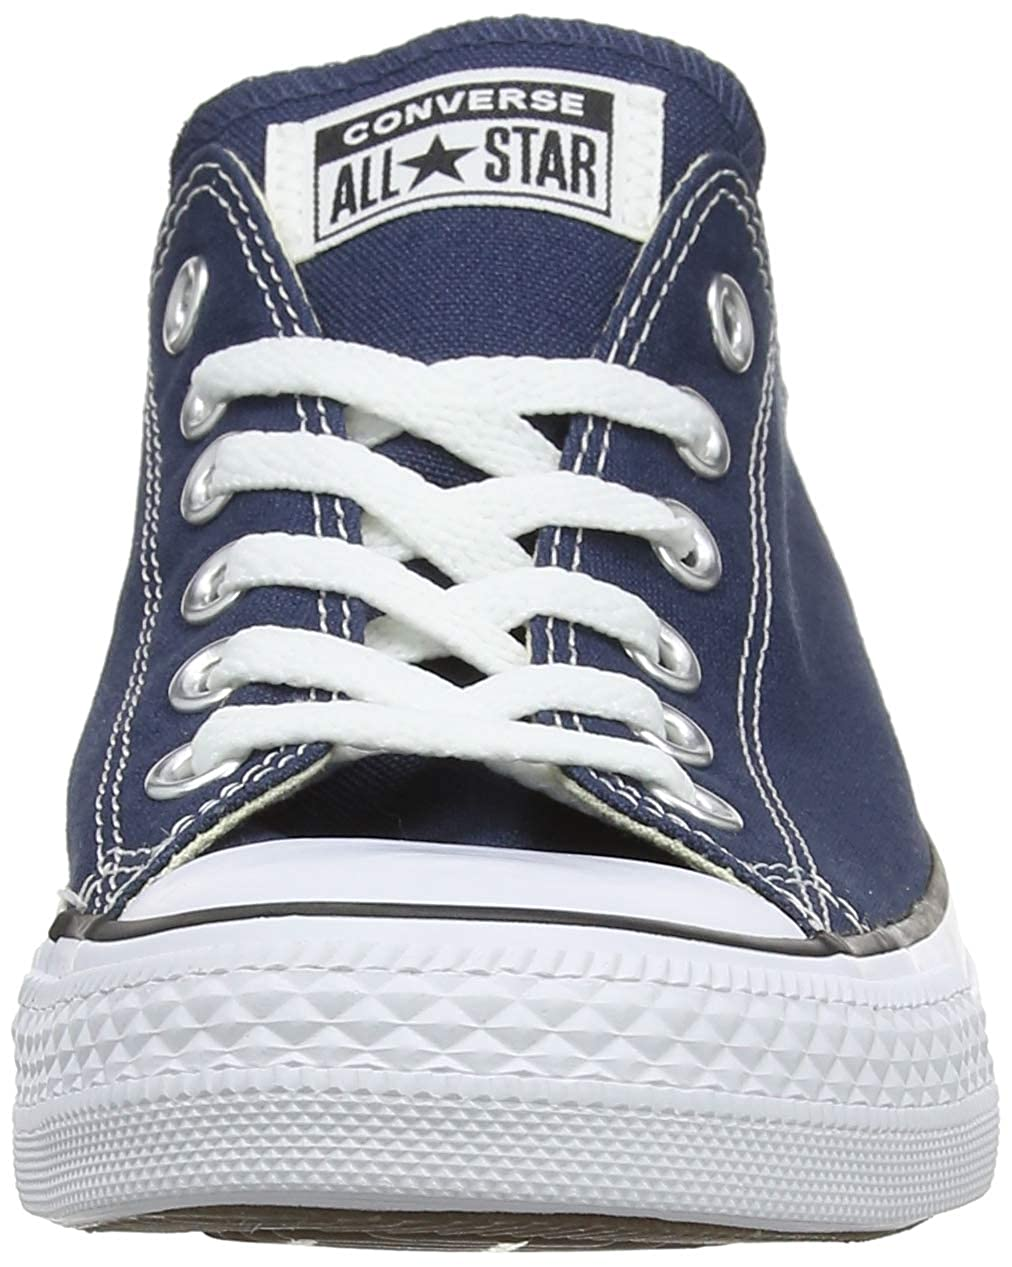 Converse Chuck Taylor All Star Ox Low Top Navy Sneakers M US 4.5 D